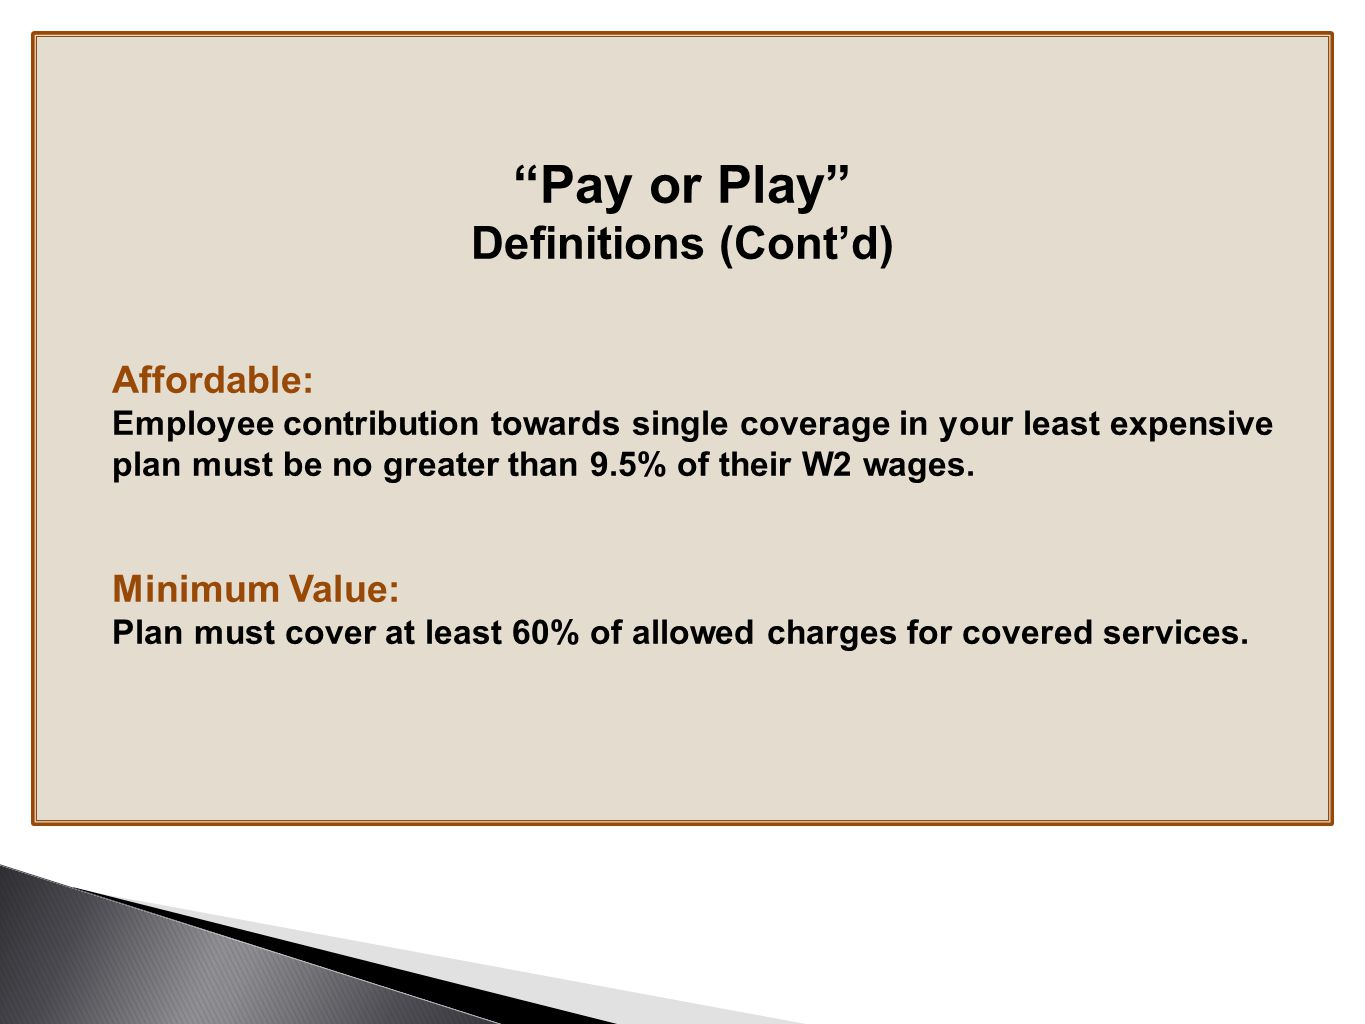 Pay or Play Definitions (Cont'd) Affordable: Employee contribution towards single coverage in your least expensive plan must be no greater than 9.5% of their W2 wages.